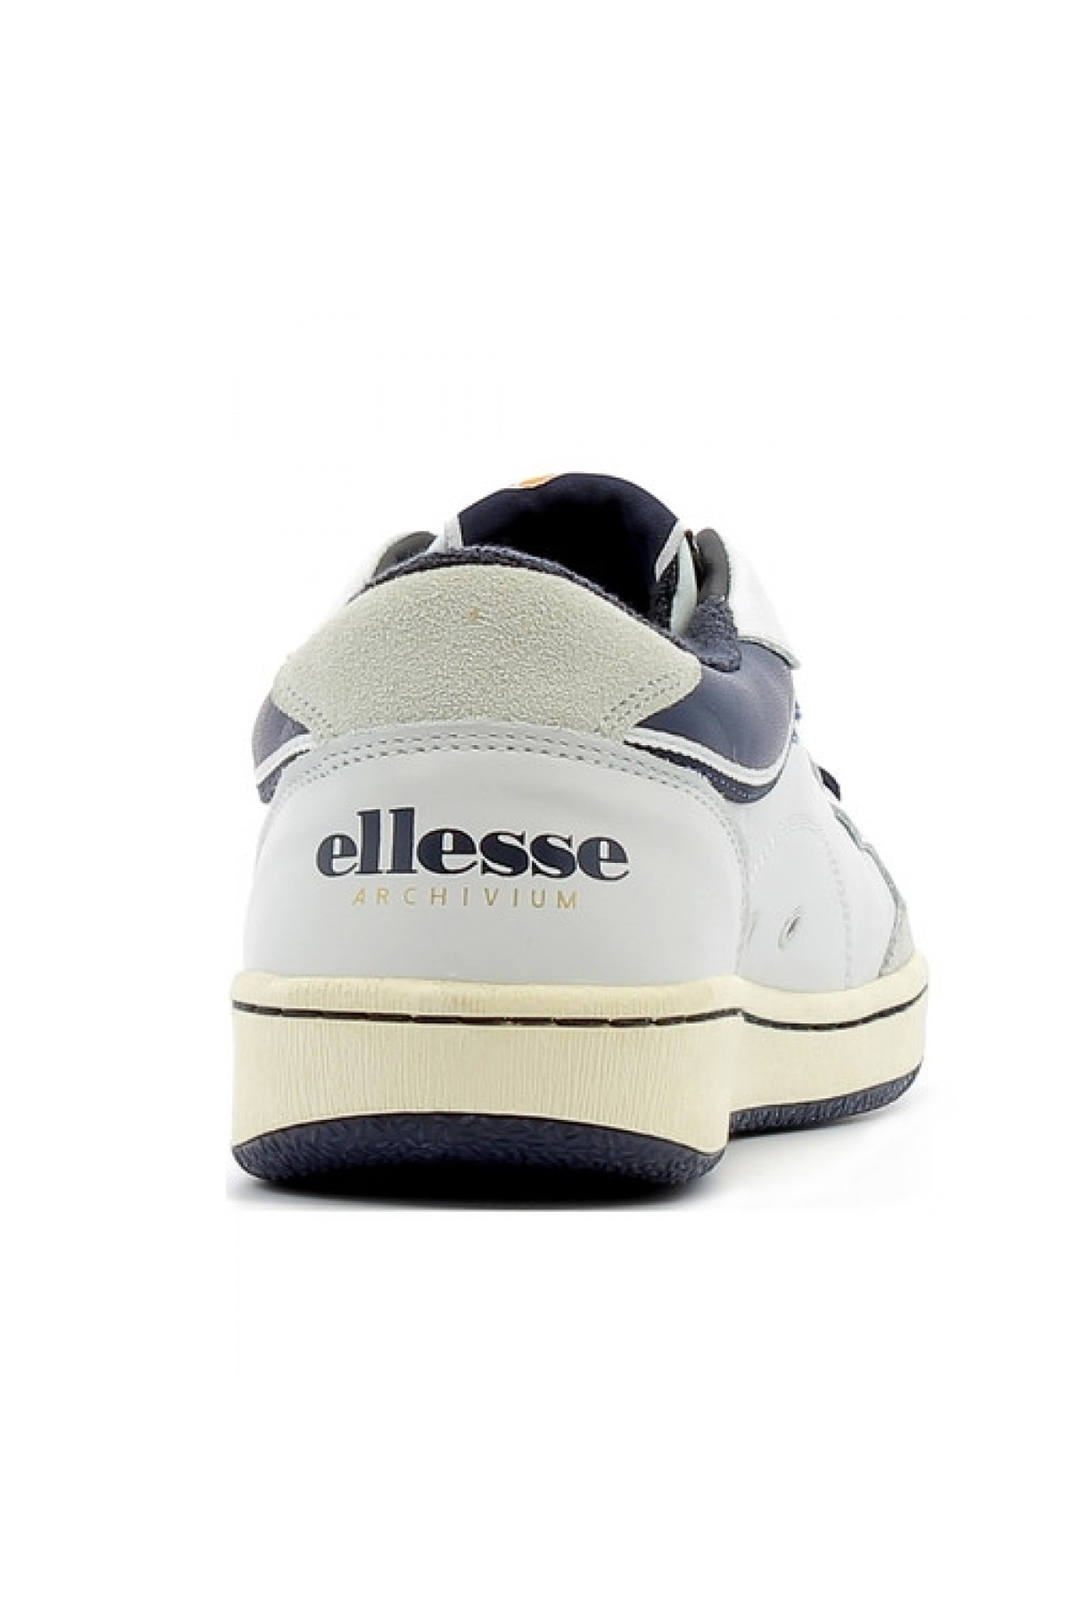 Baskets / Sport  Ellesse EL814468 H 03 WHITE / DEEP